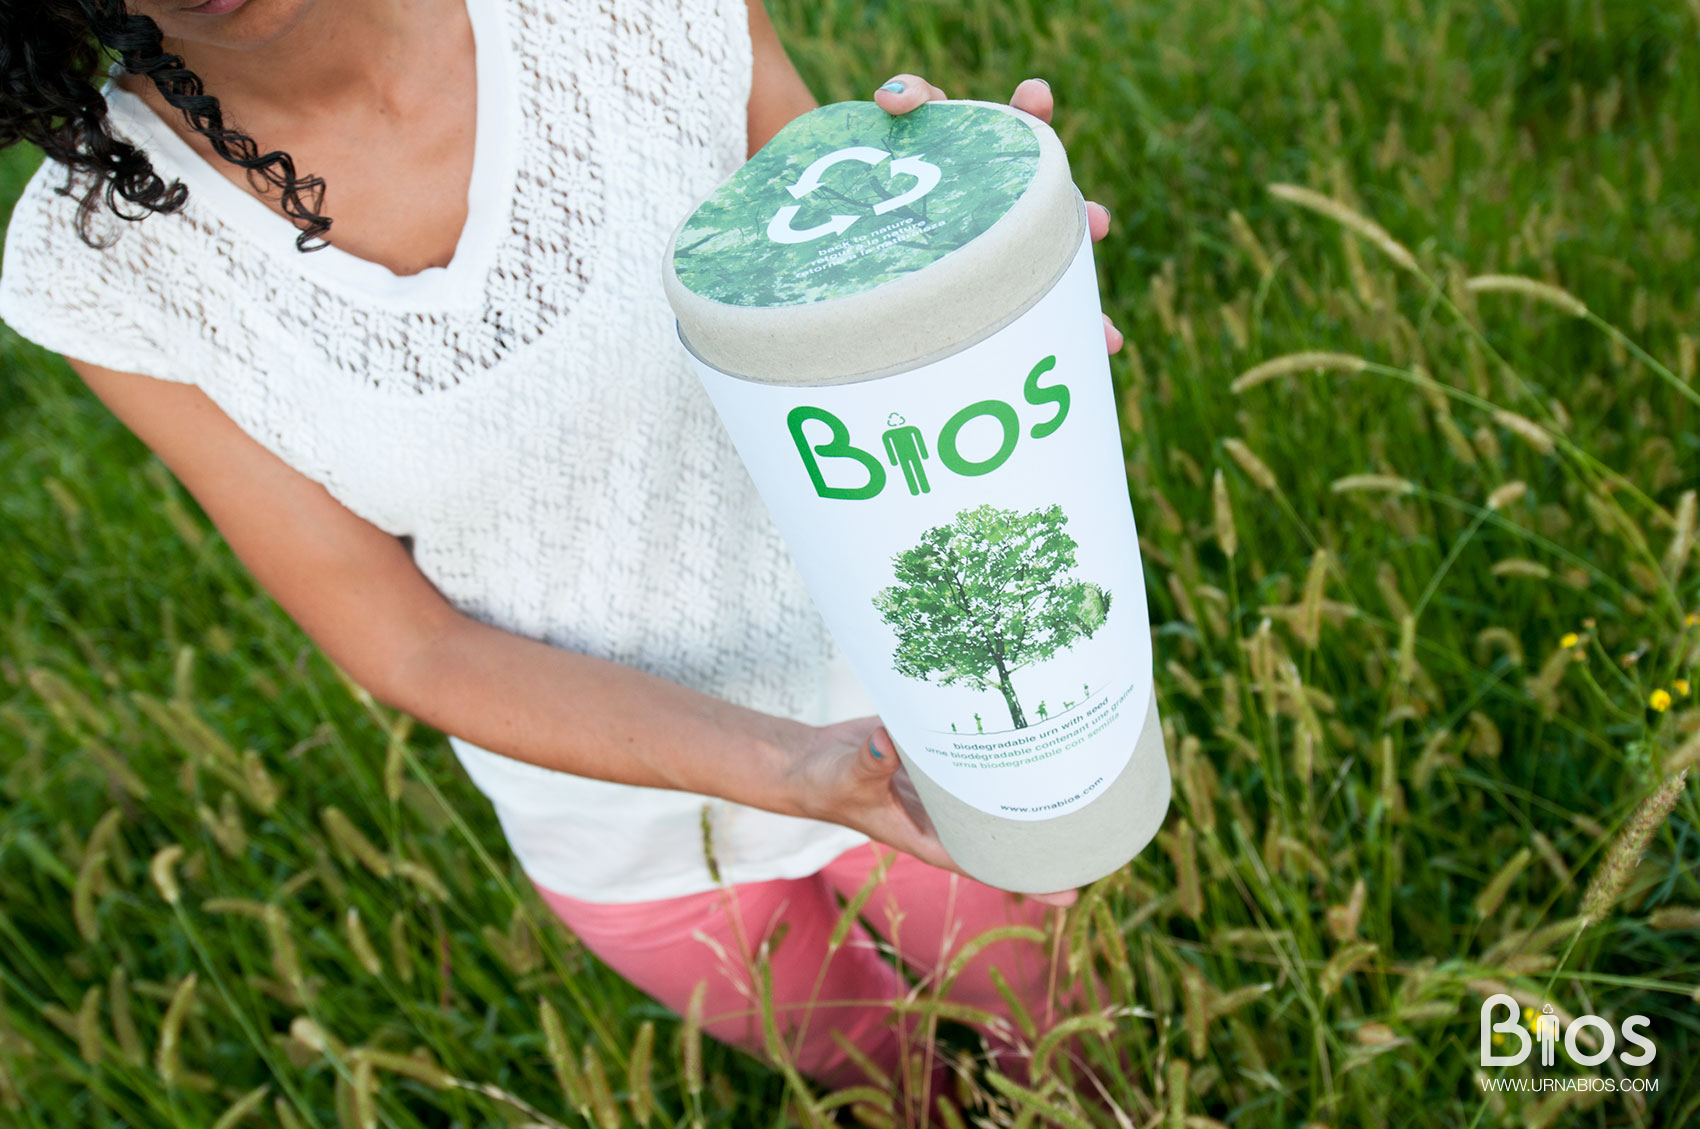 Find Living Urn Bios Urn at the Eco Expo